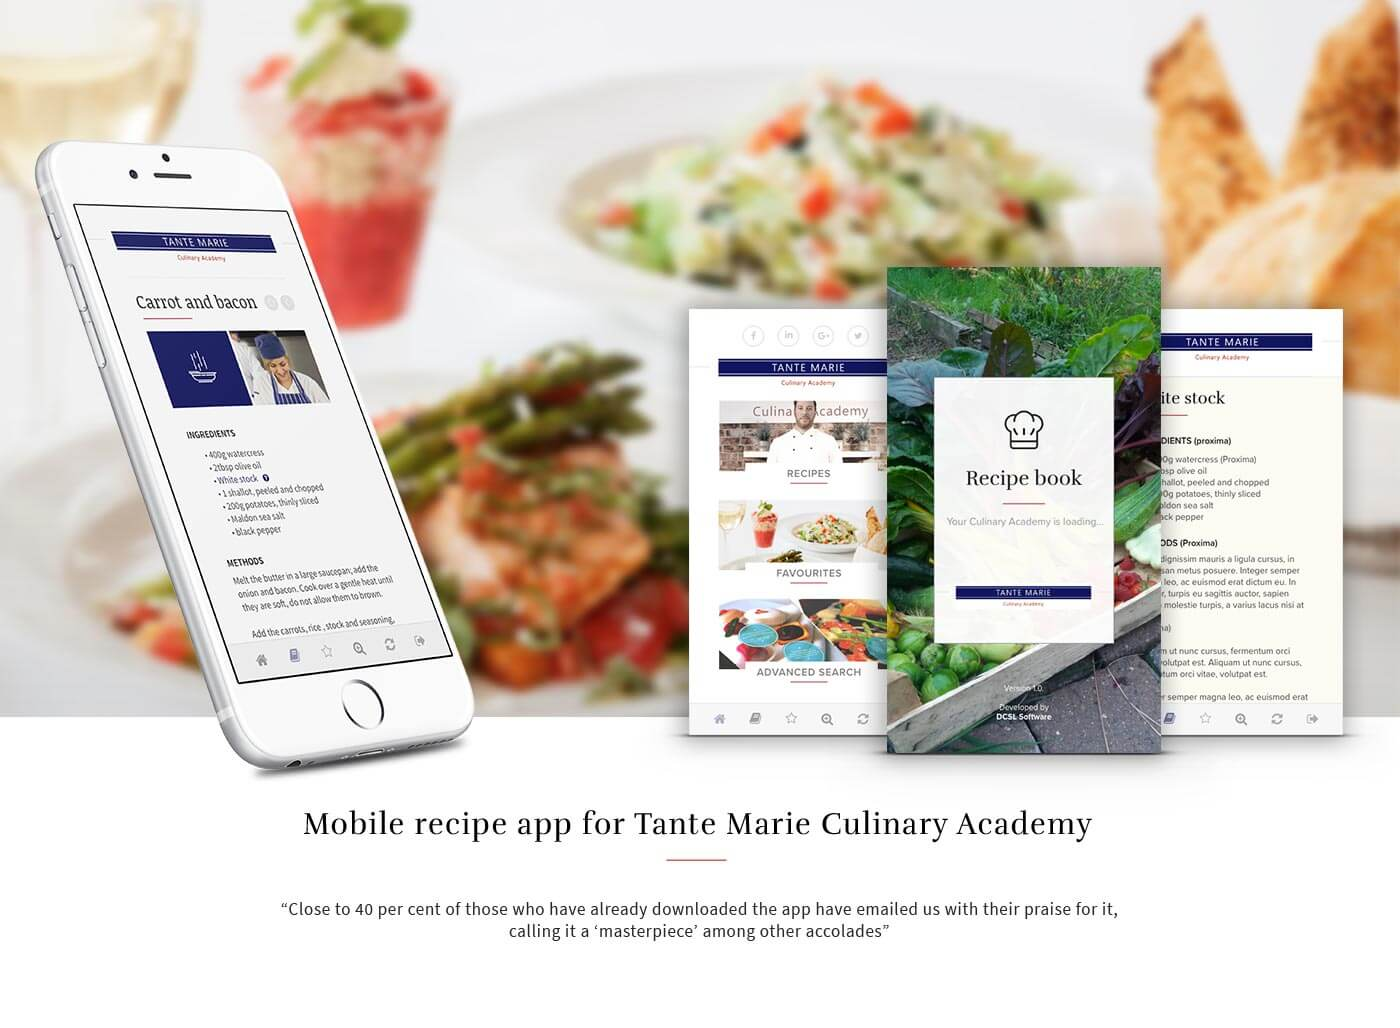 Mobile recipe app for Tante Marie Culinary Academy